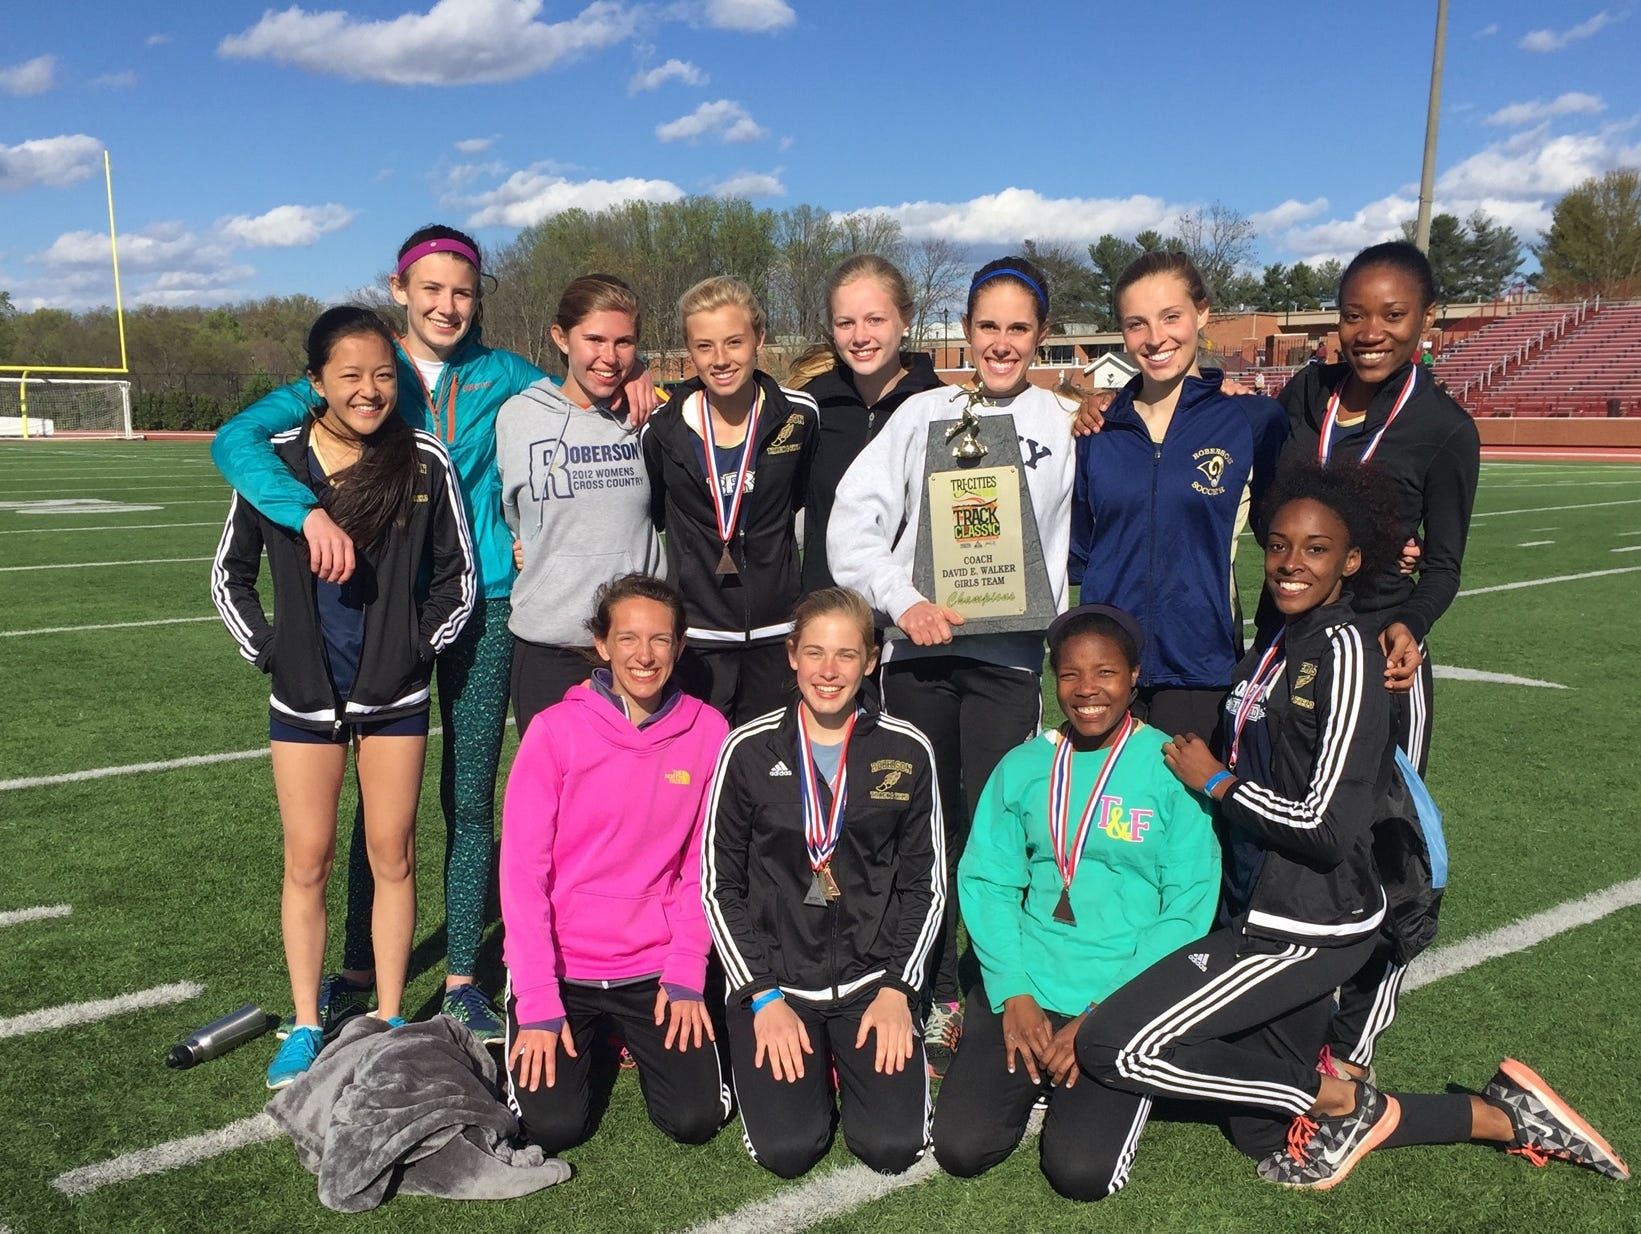 The Roberson girls won Saturday's Tri-Cities Track Classic in Johnson City, Tenn., with just a dozen athletes.